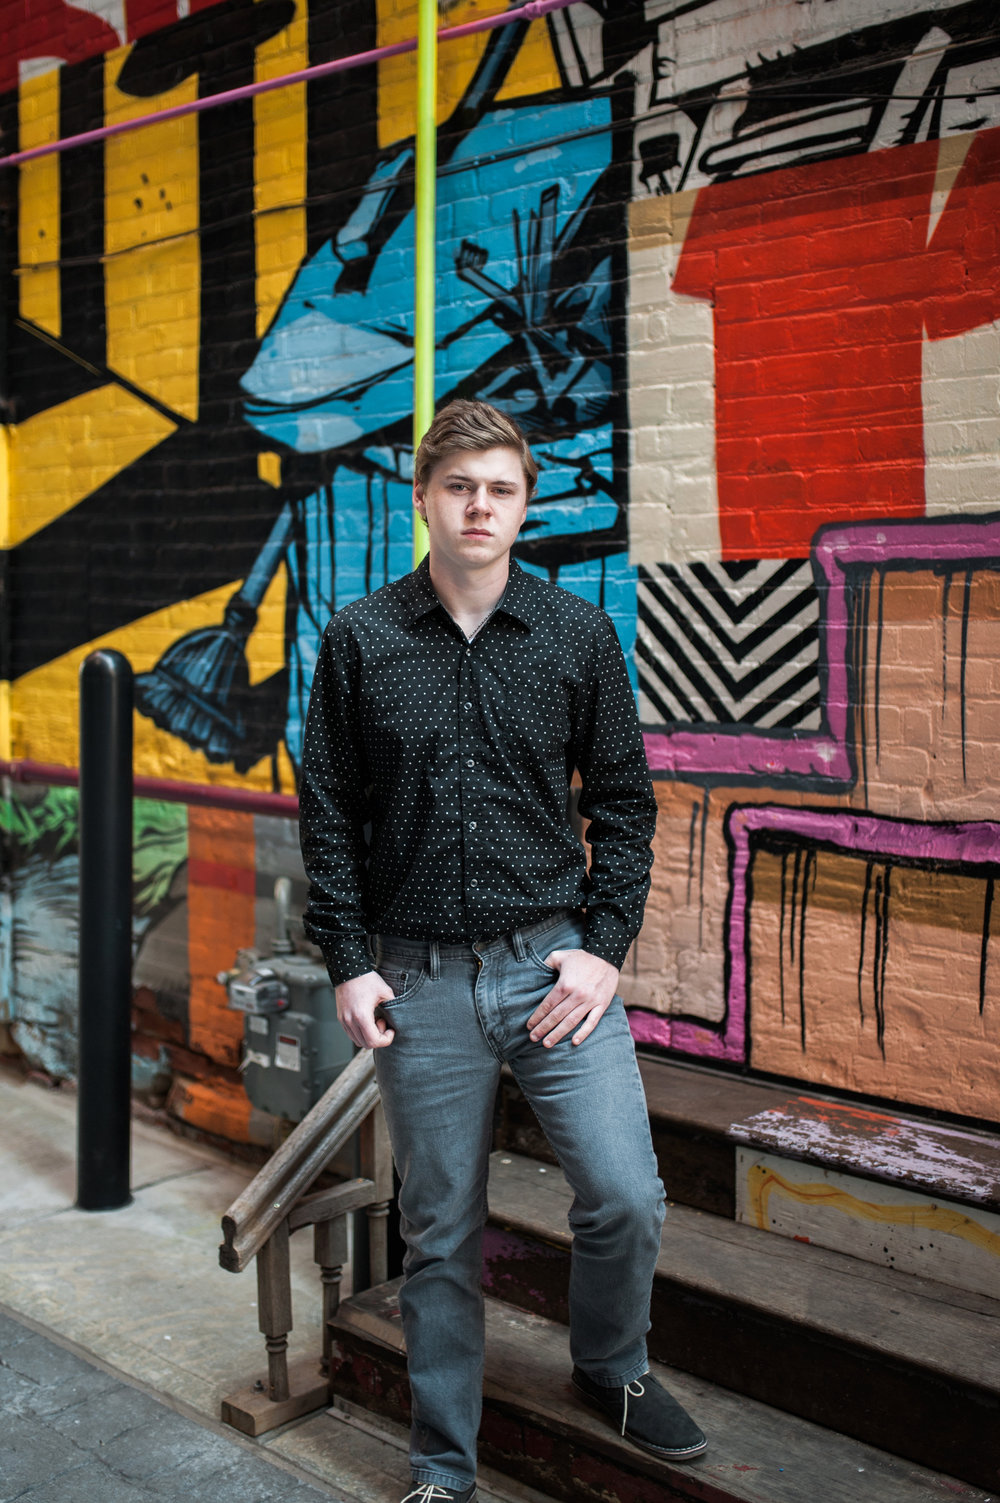 Graffiti Senior pictures